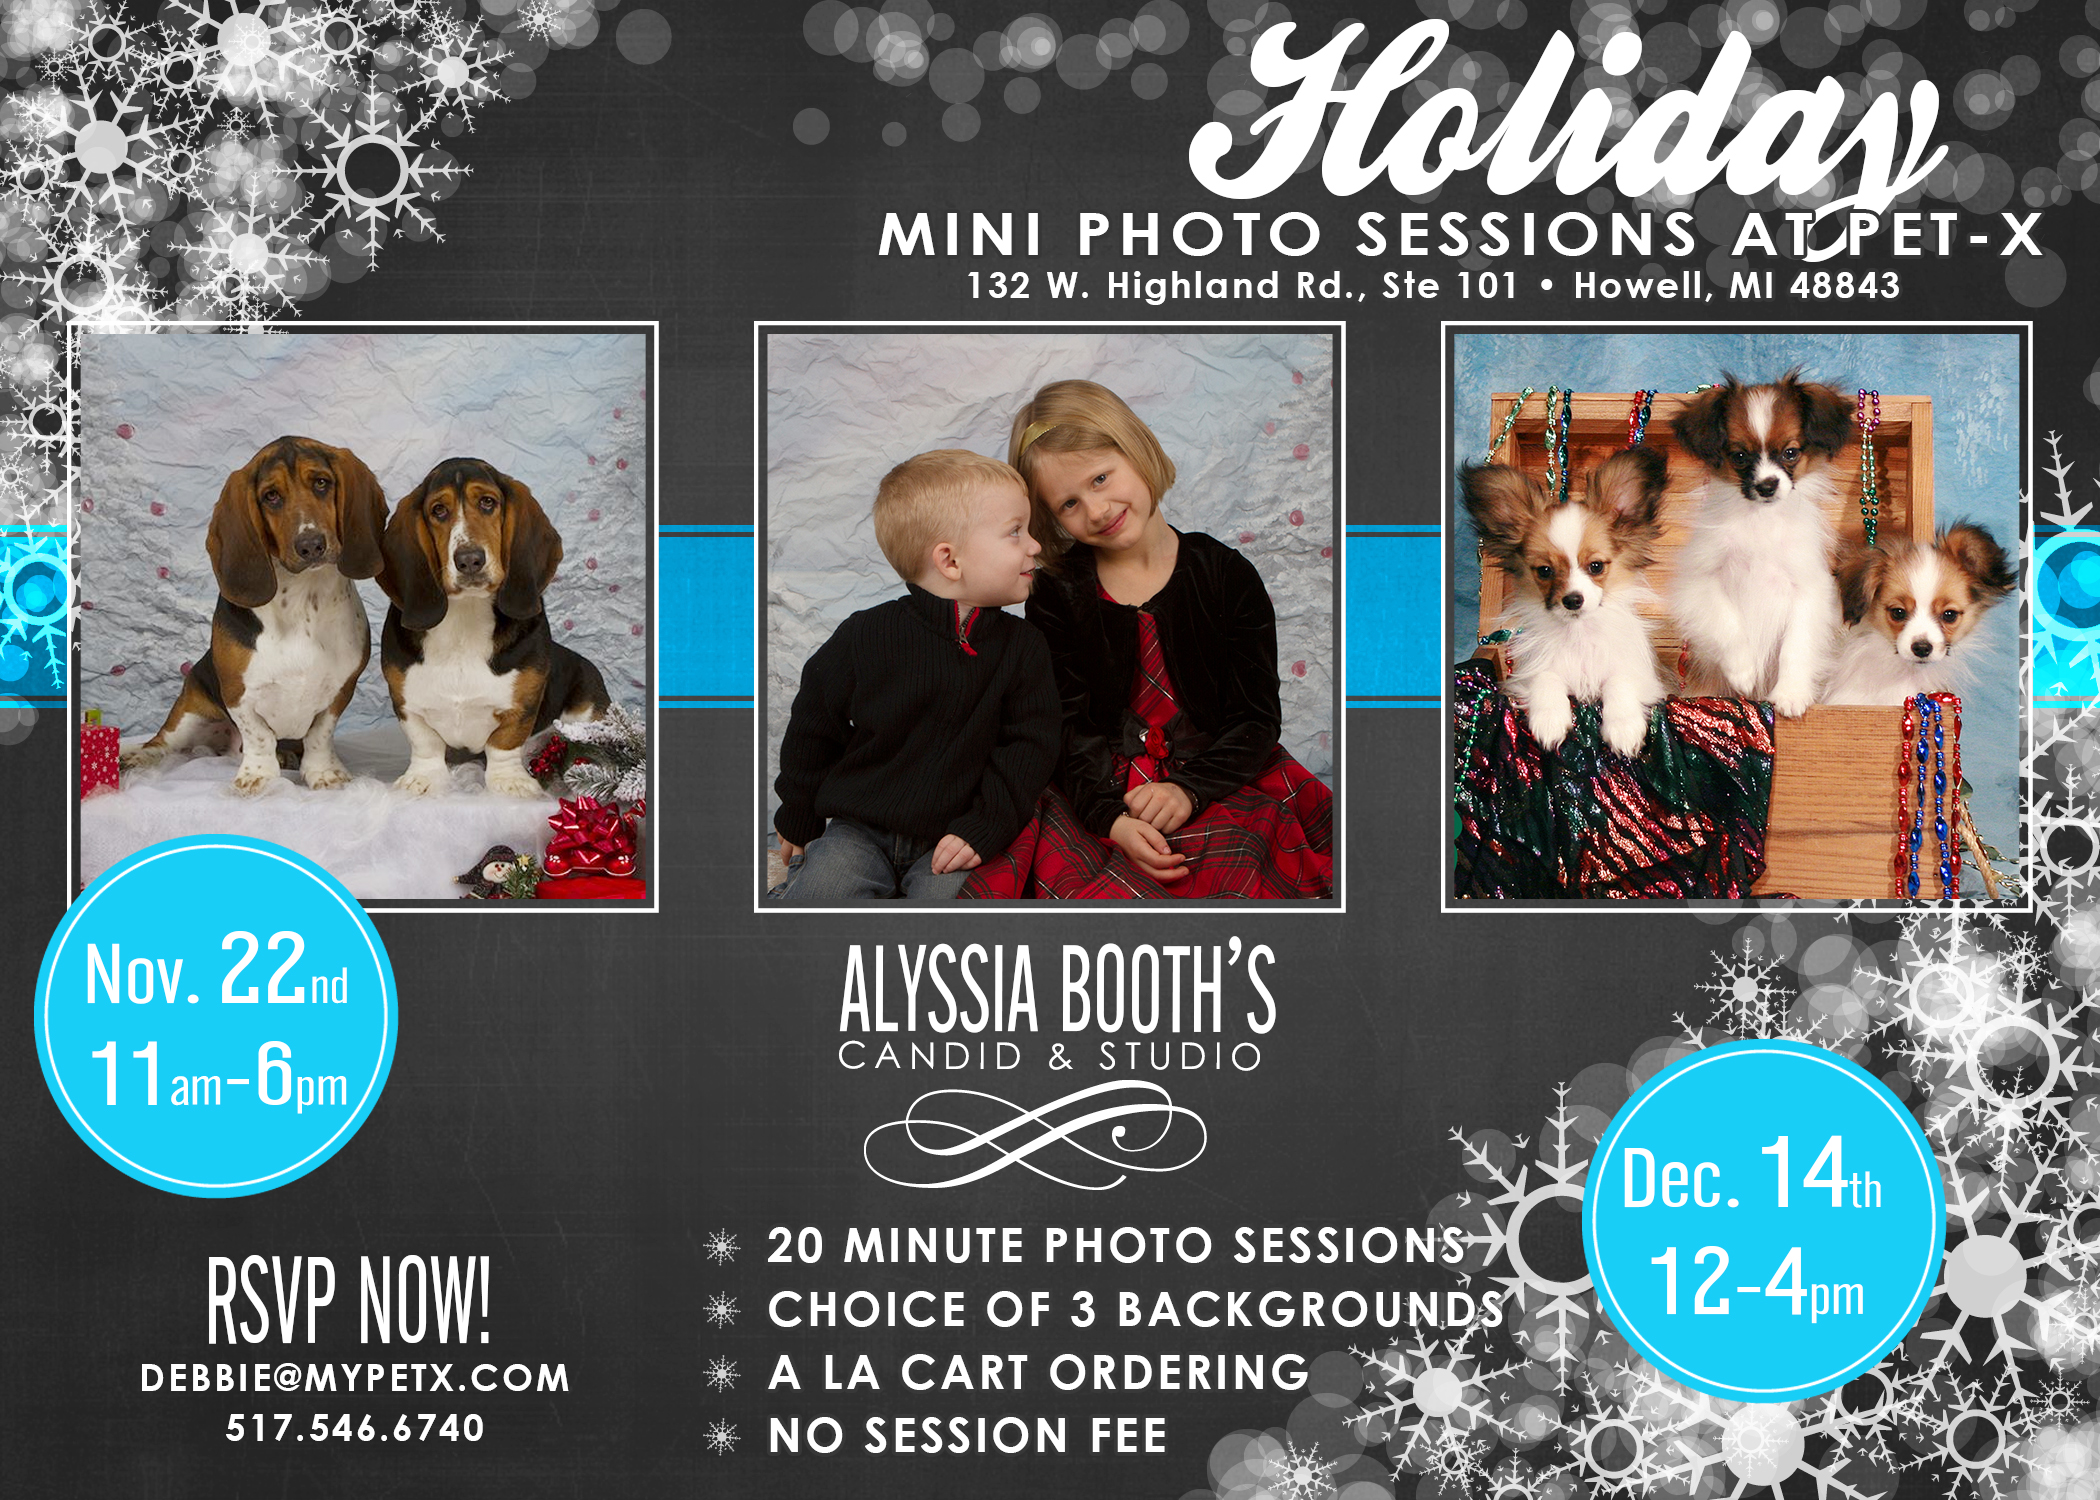 Photos At Pet-X in Howell